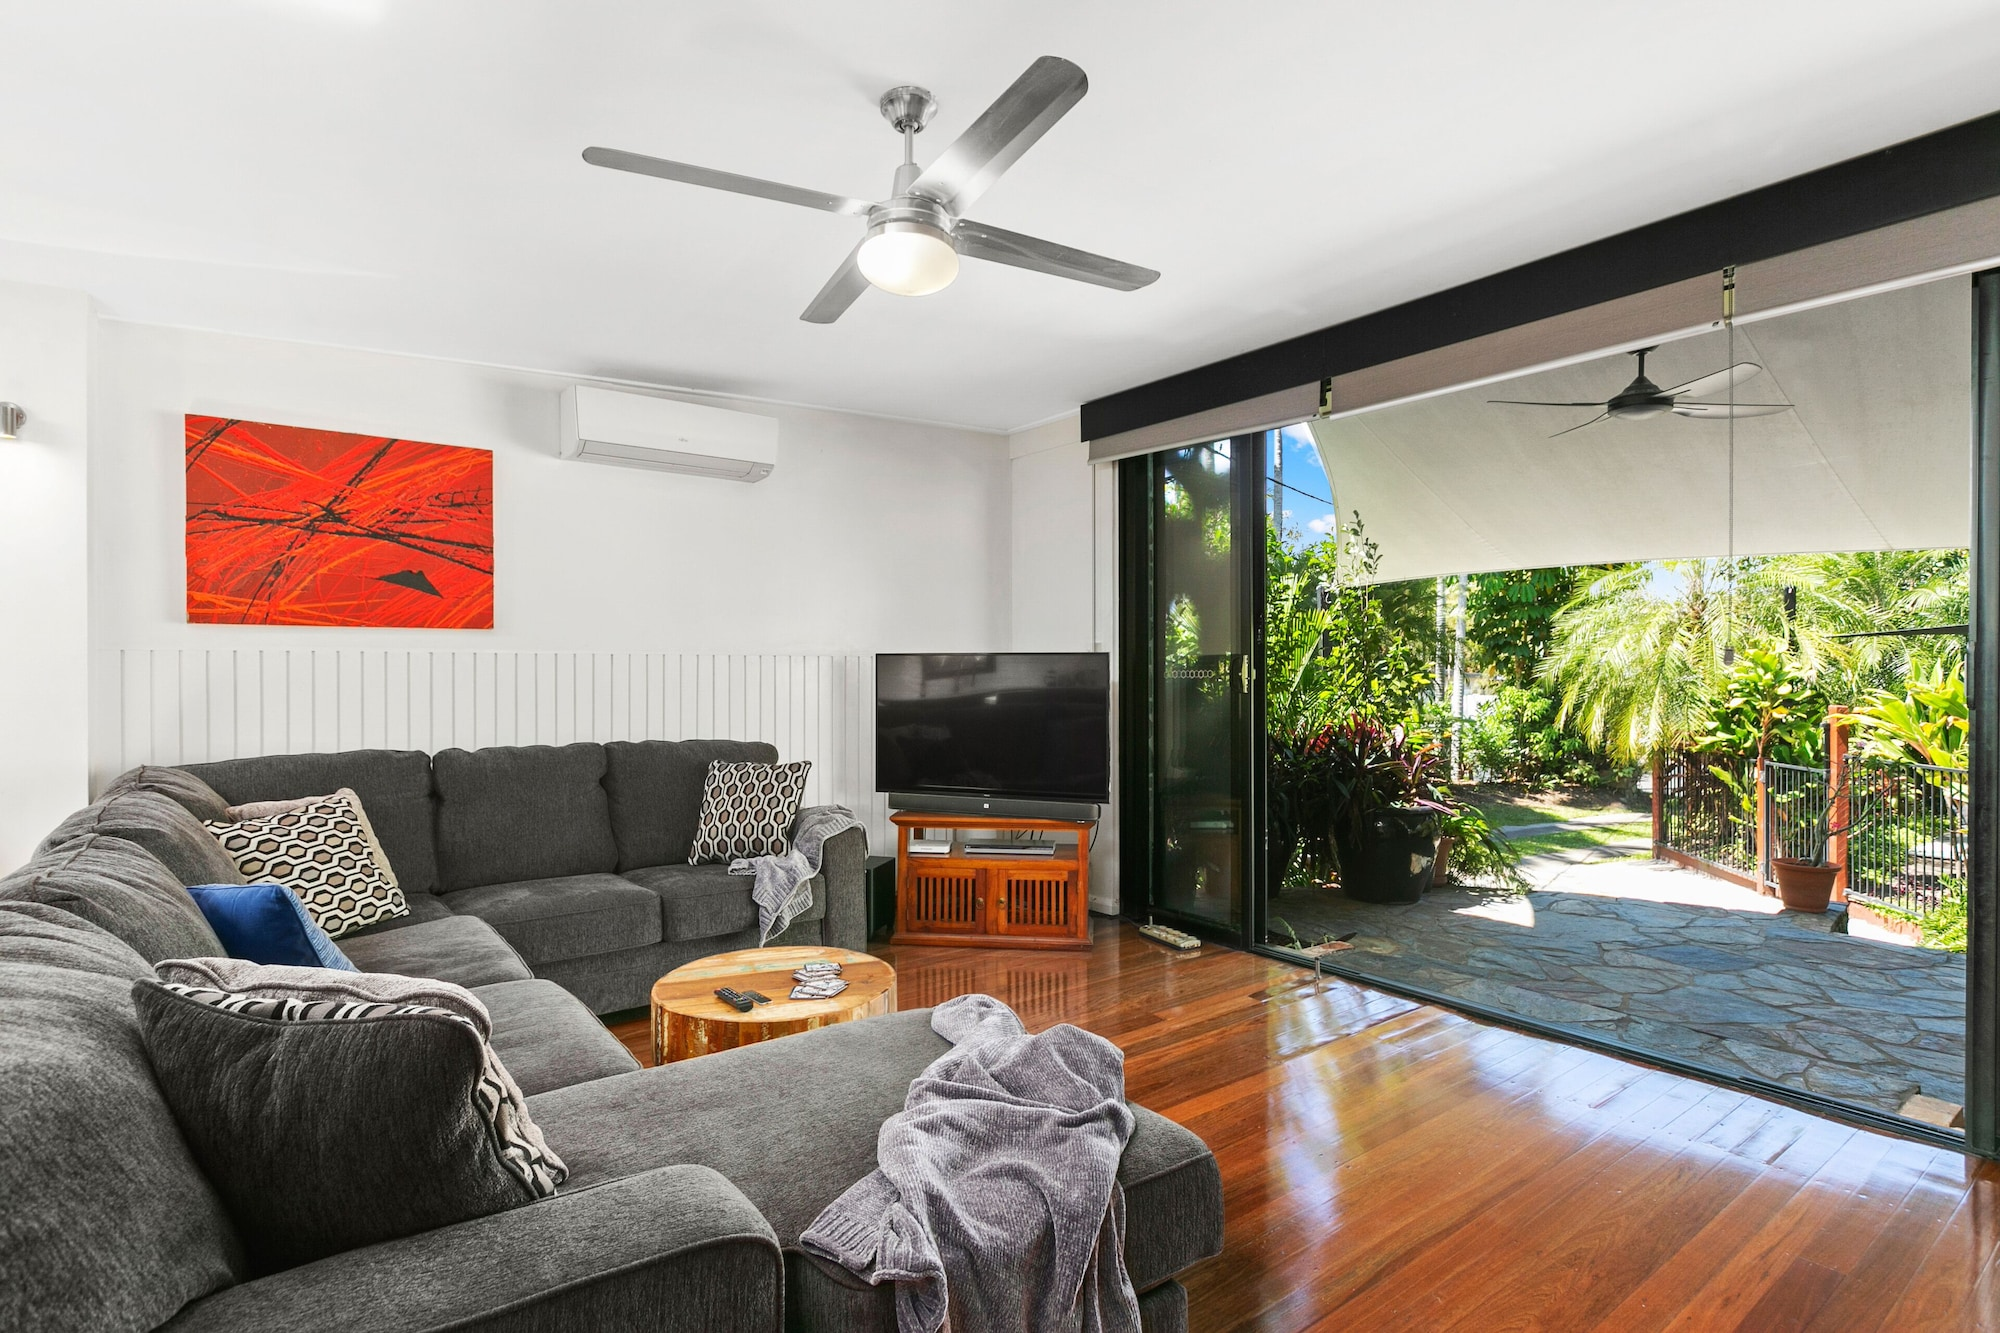 Tropical 3 Bedroom House, Pool plus 4th Bedroom Bungalow, Cairns - Mt Whitfield